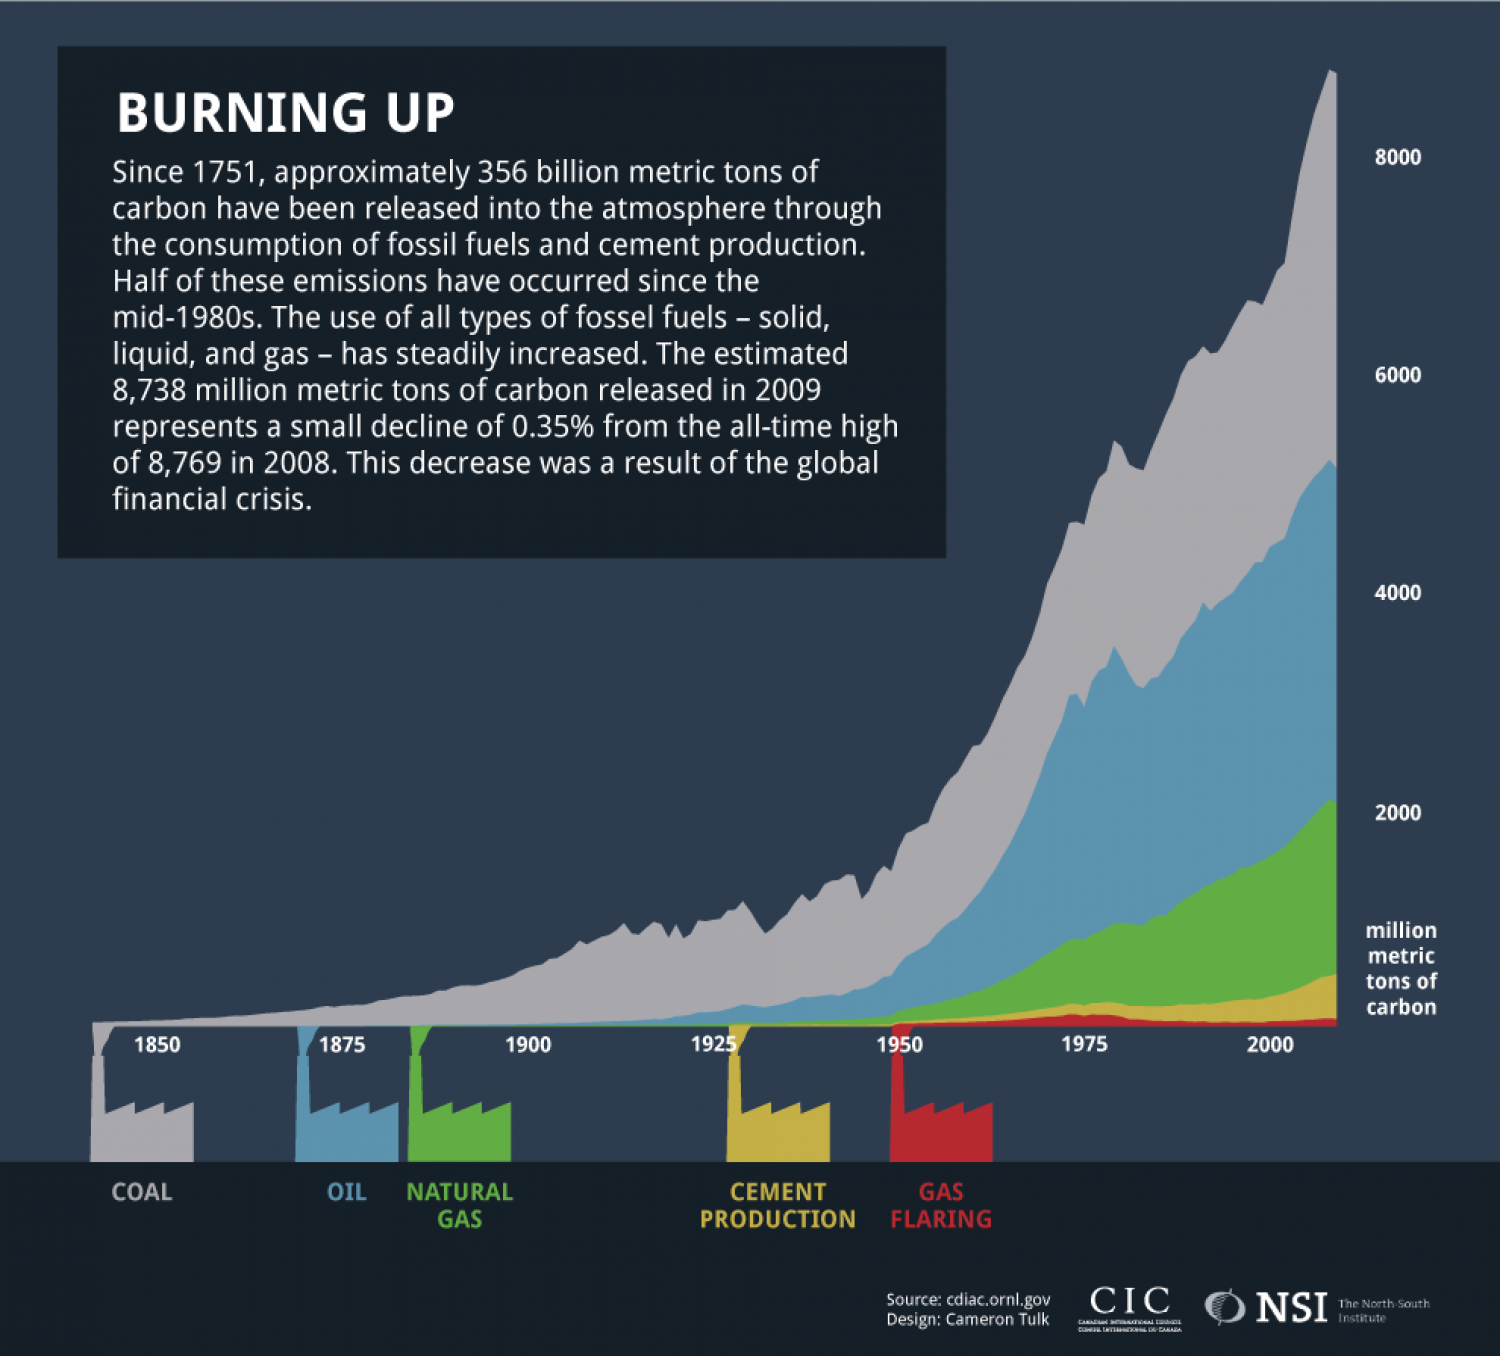 Burning Up Infographic